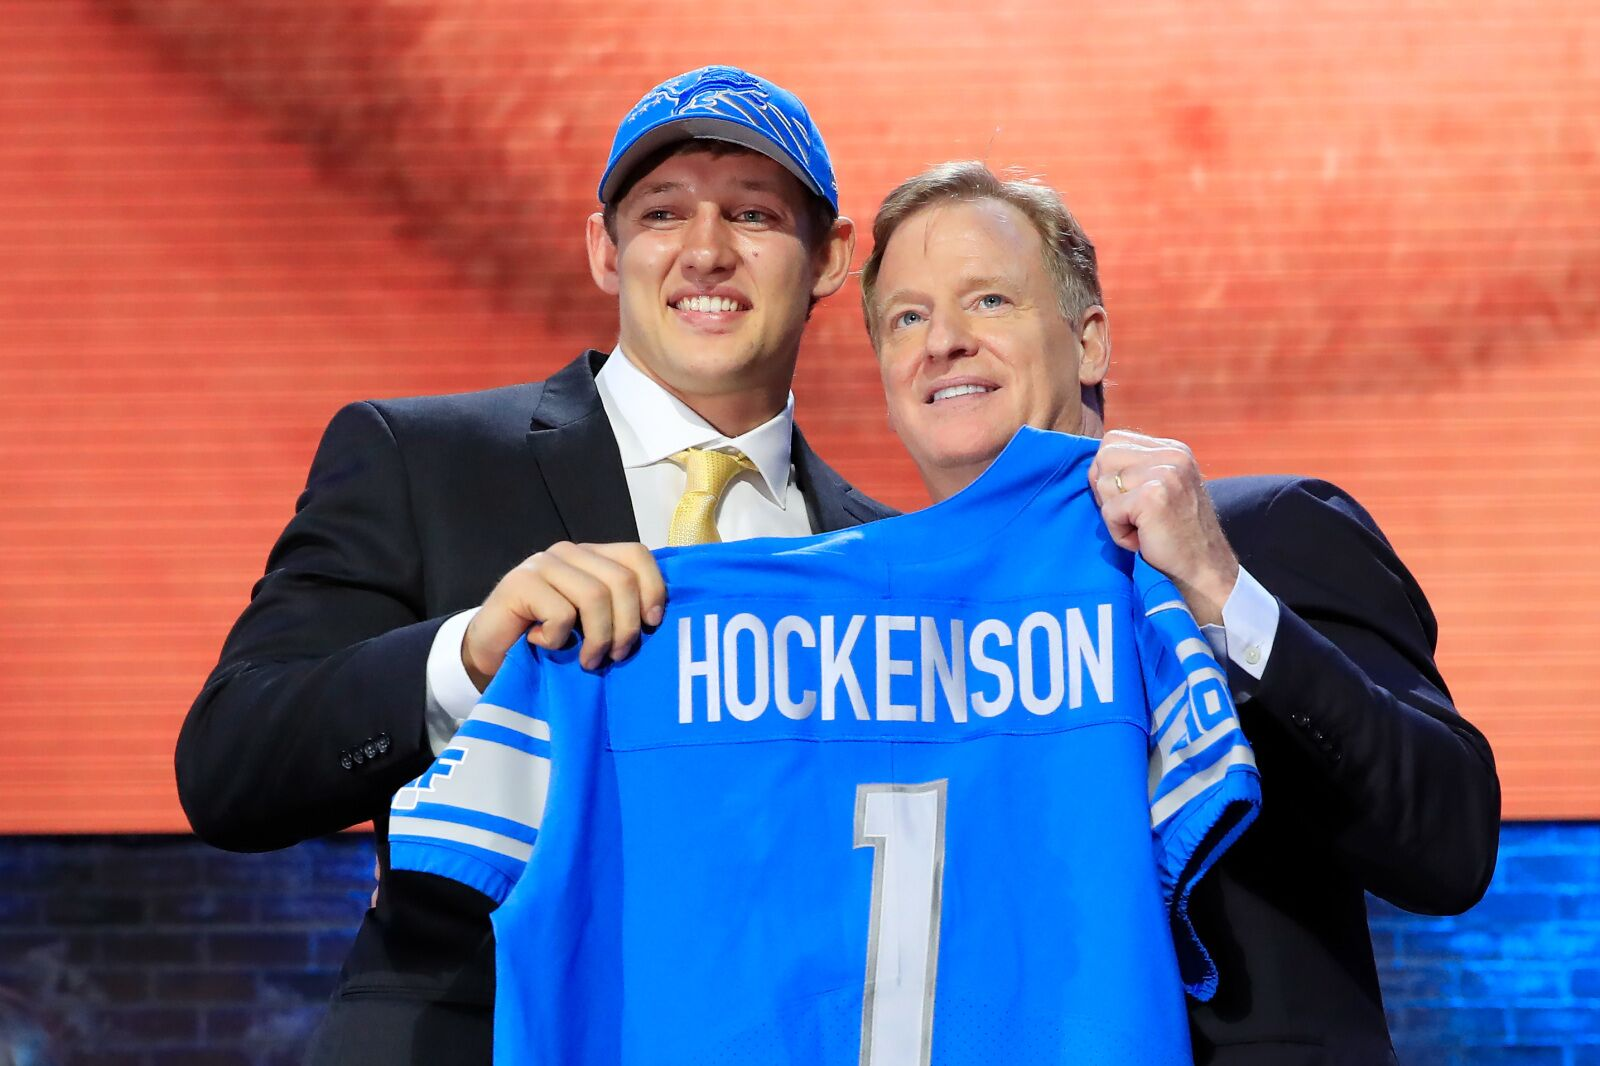 T.J. Hockenson could be first tight end to win Rookie of Year